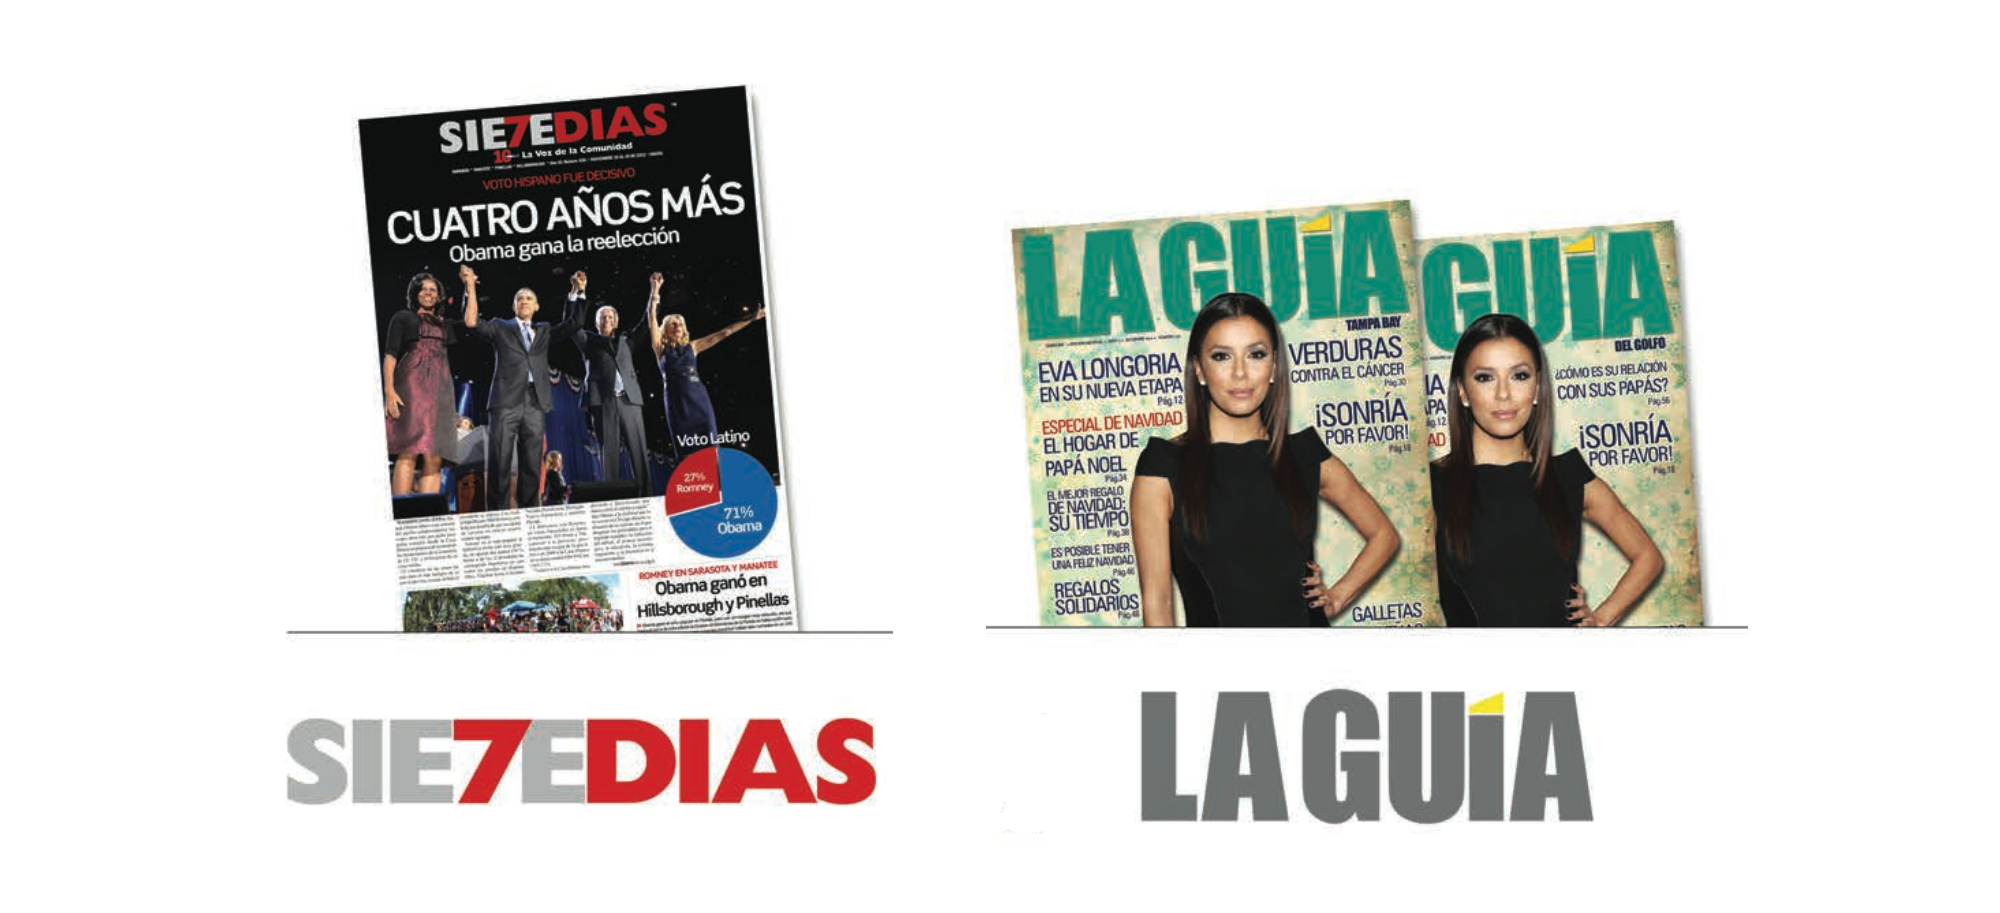 Our two publications, 7Dias Newspaper and LaGuia Magazine